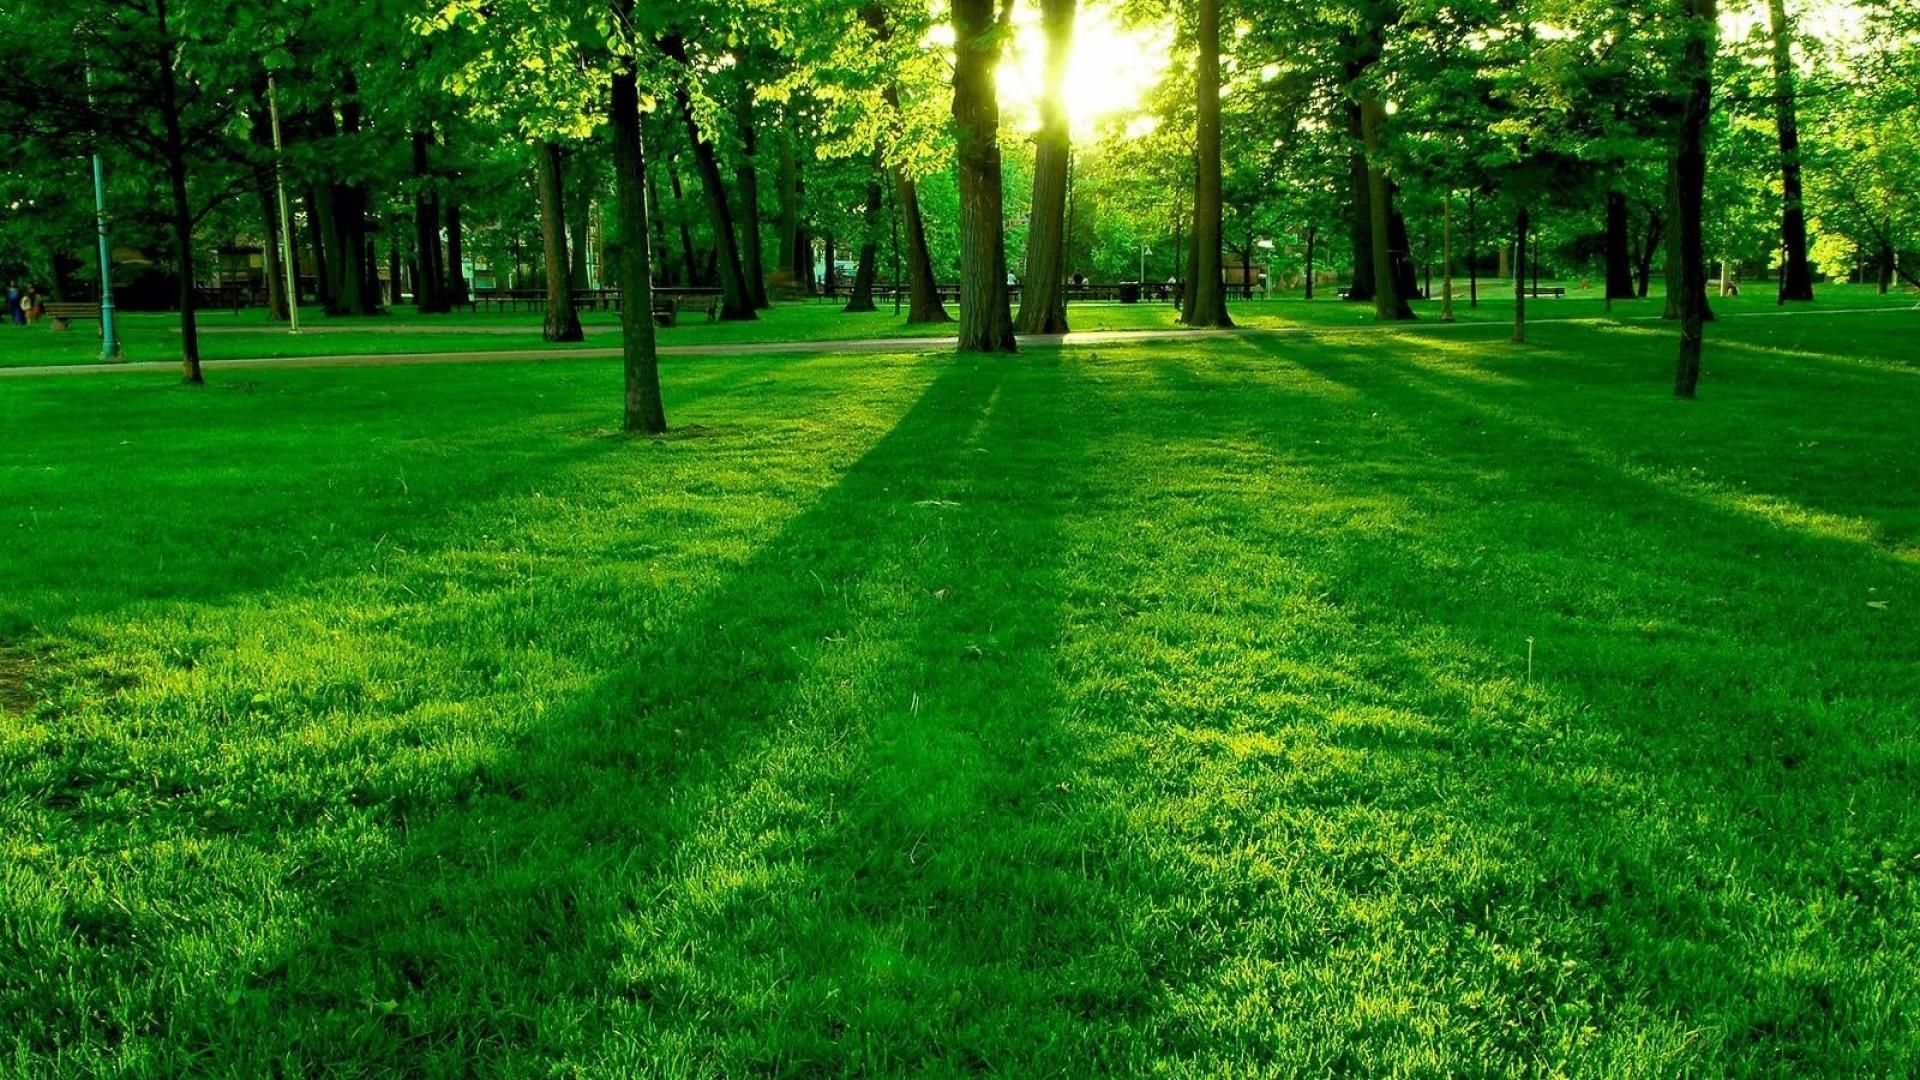 Summer Green Nature Wallpaper 1600 1200 Hd Desktop Wallpapers